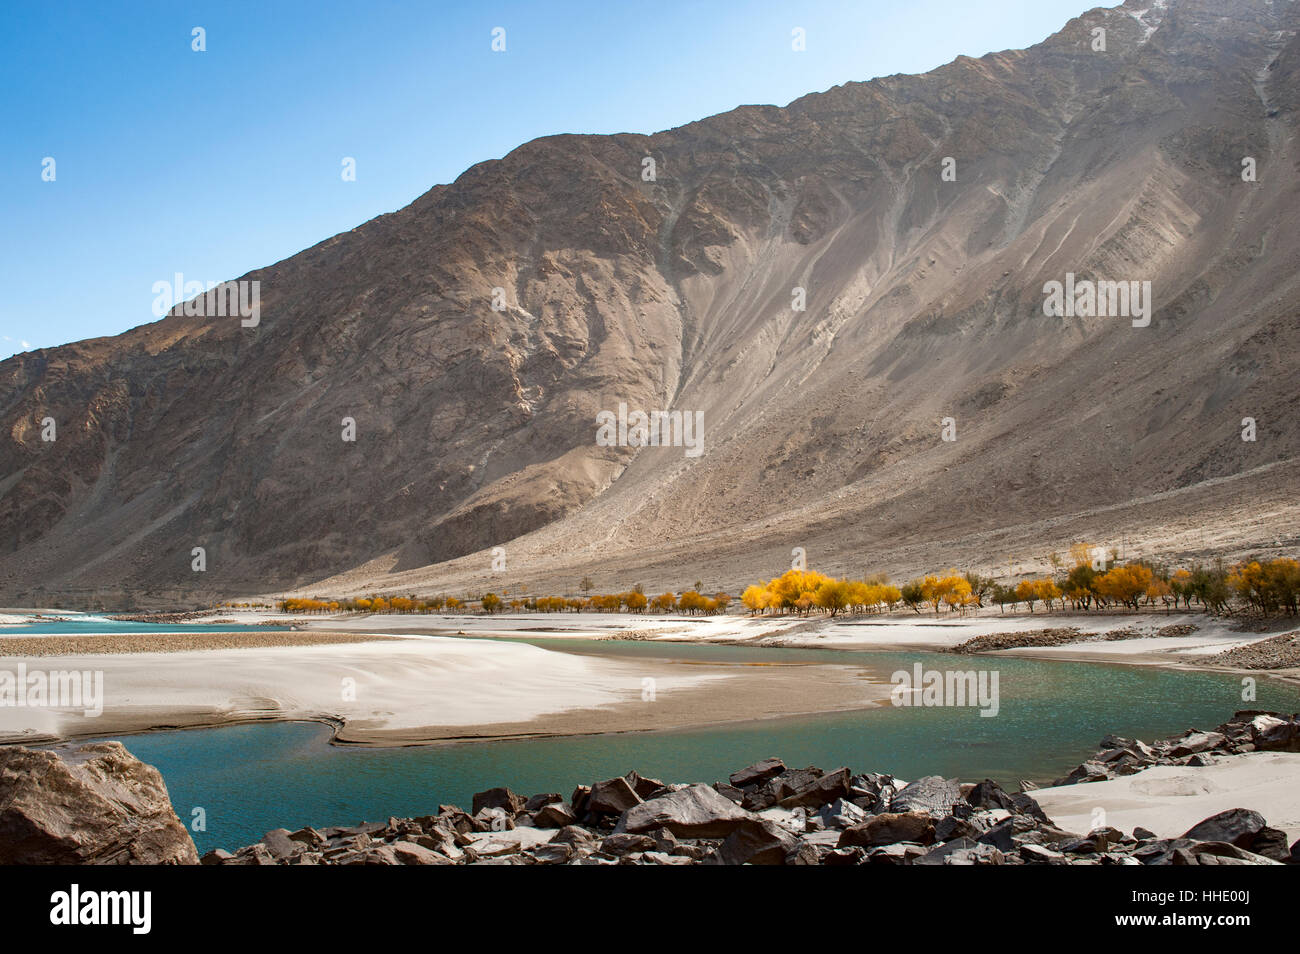 The crystal clear Shyok River in the Khapalu valley near Skardu, Gilgit-Baltistan, Pakistan - Stock Image